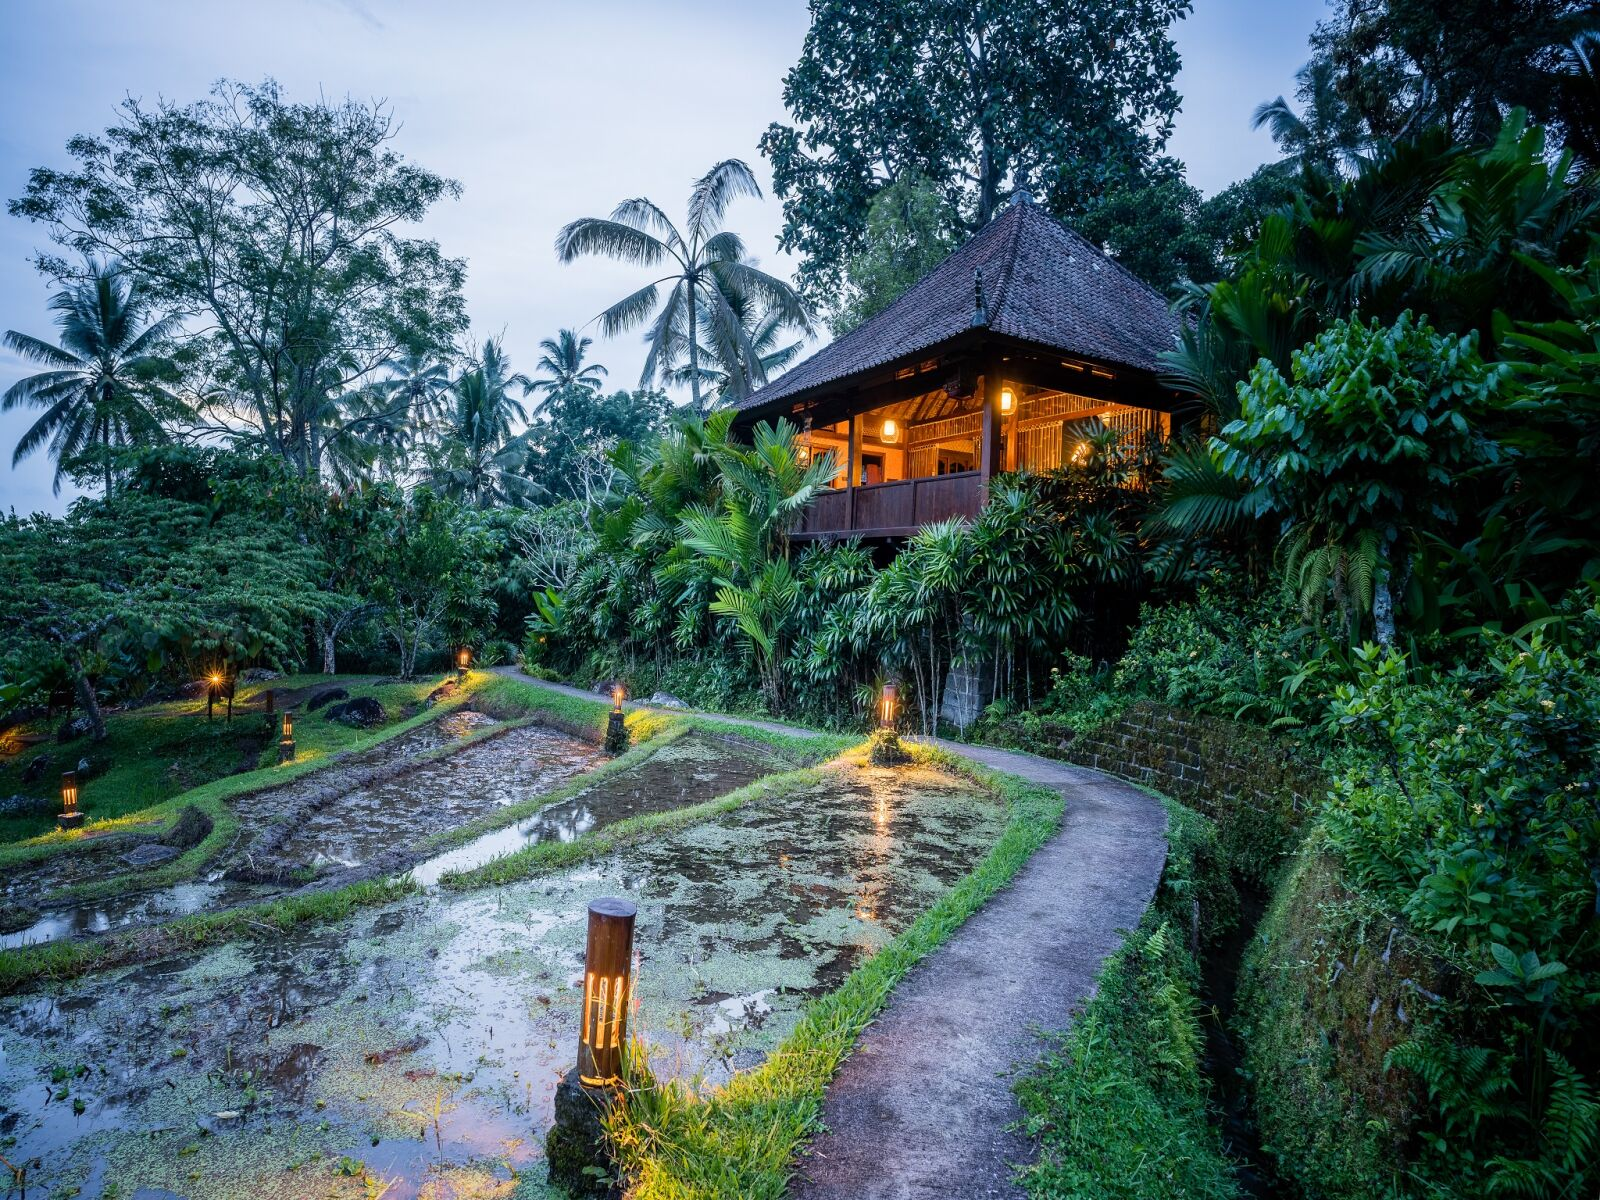 Raised bungalow at dusk with warm lighting, surrounded by trees and overlooking rice paddy